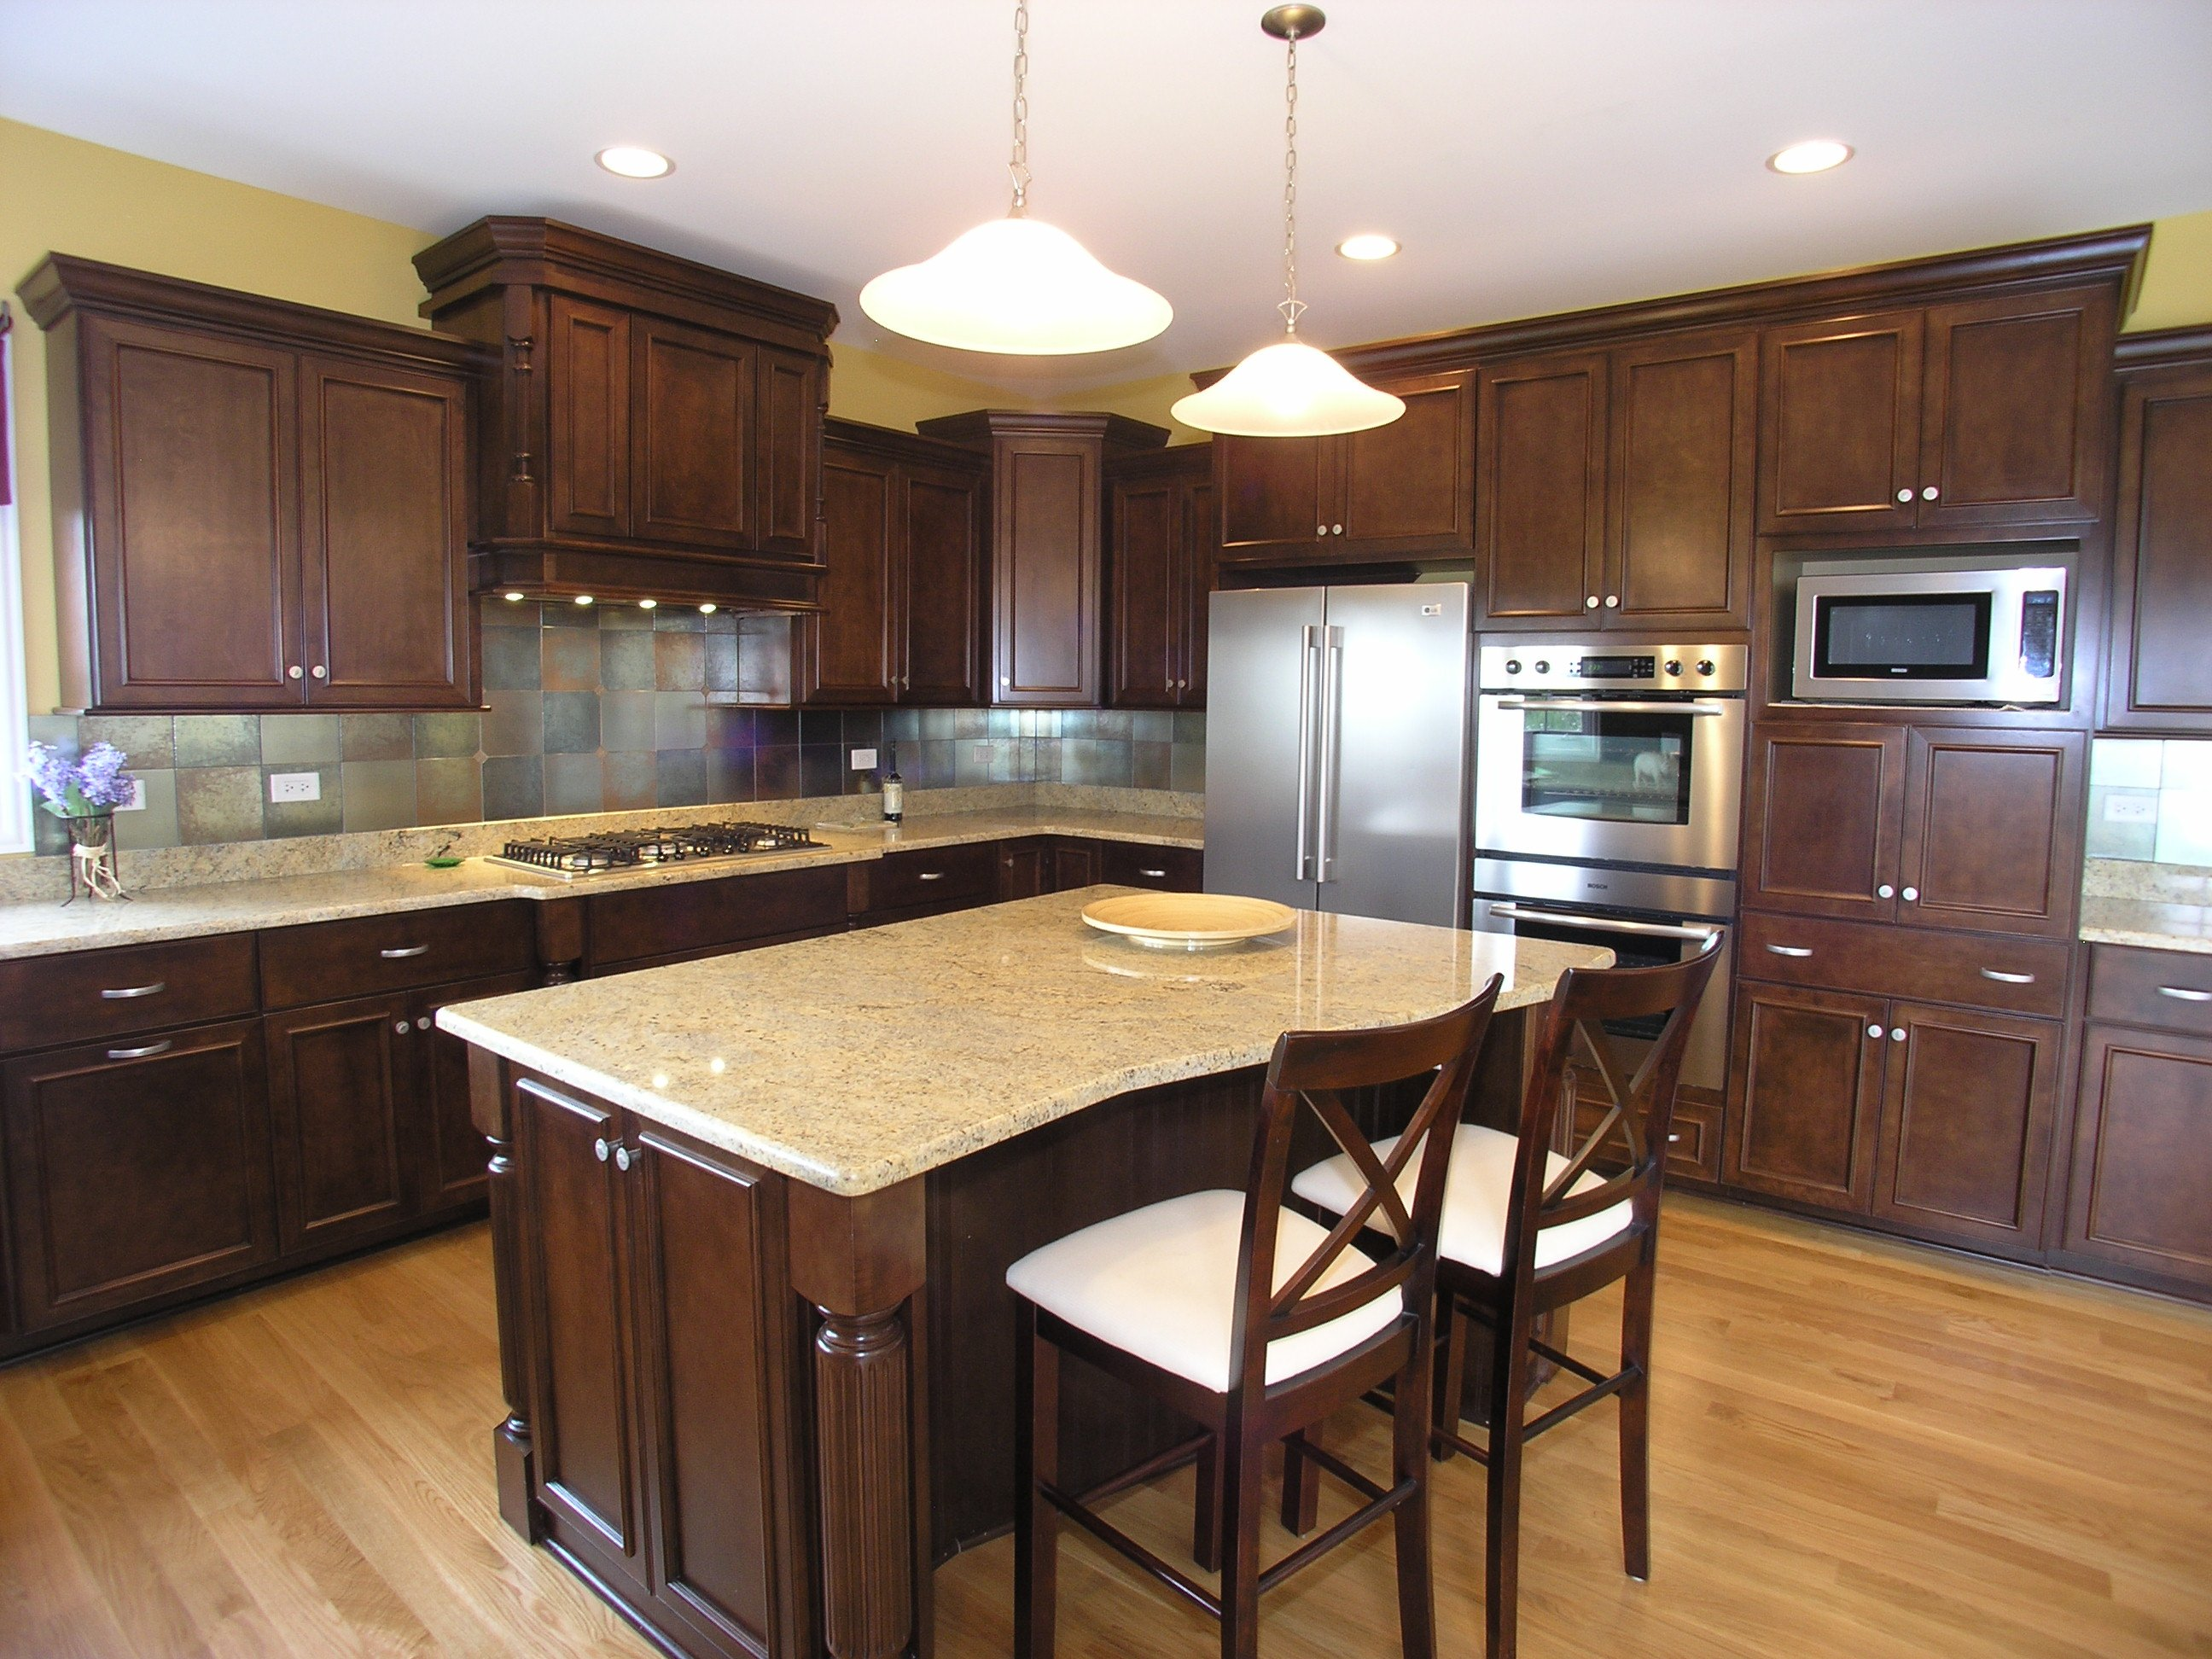 Granite Countertops For Kitchen Granite Kitchen Countertops My Beautiful Kitchen Renovation With